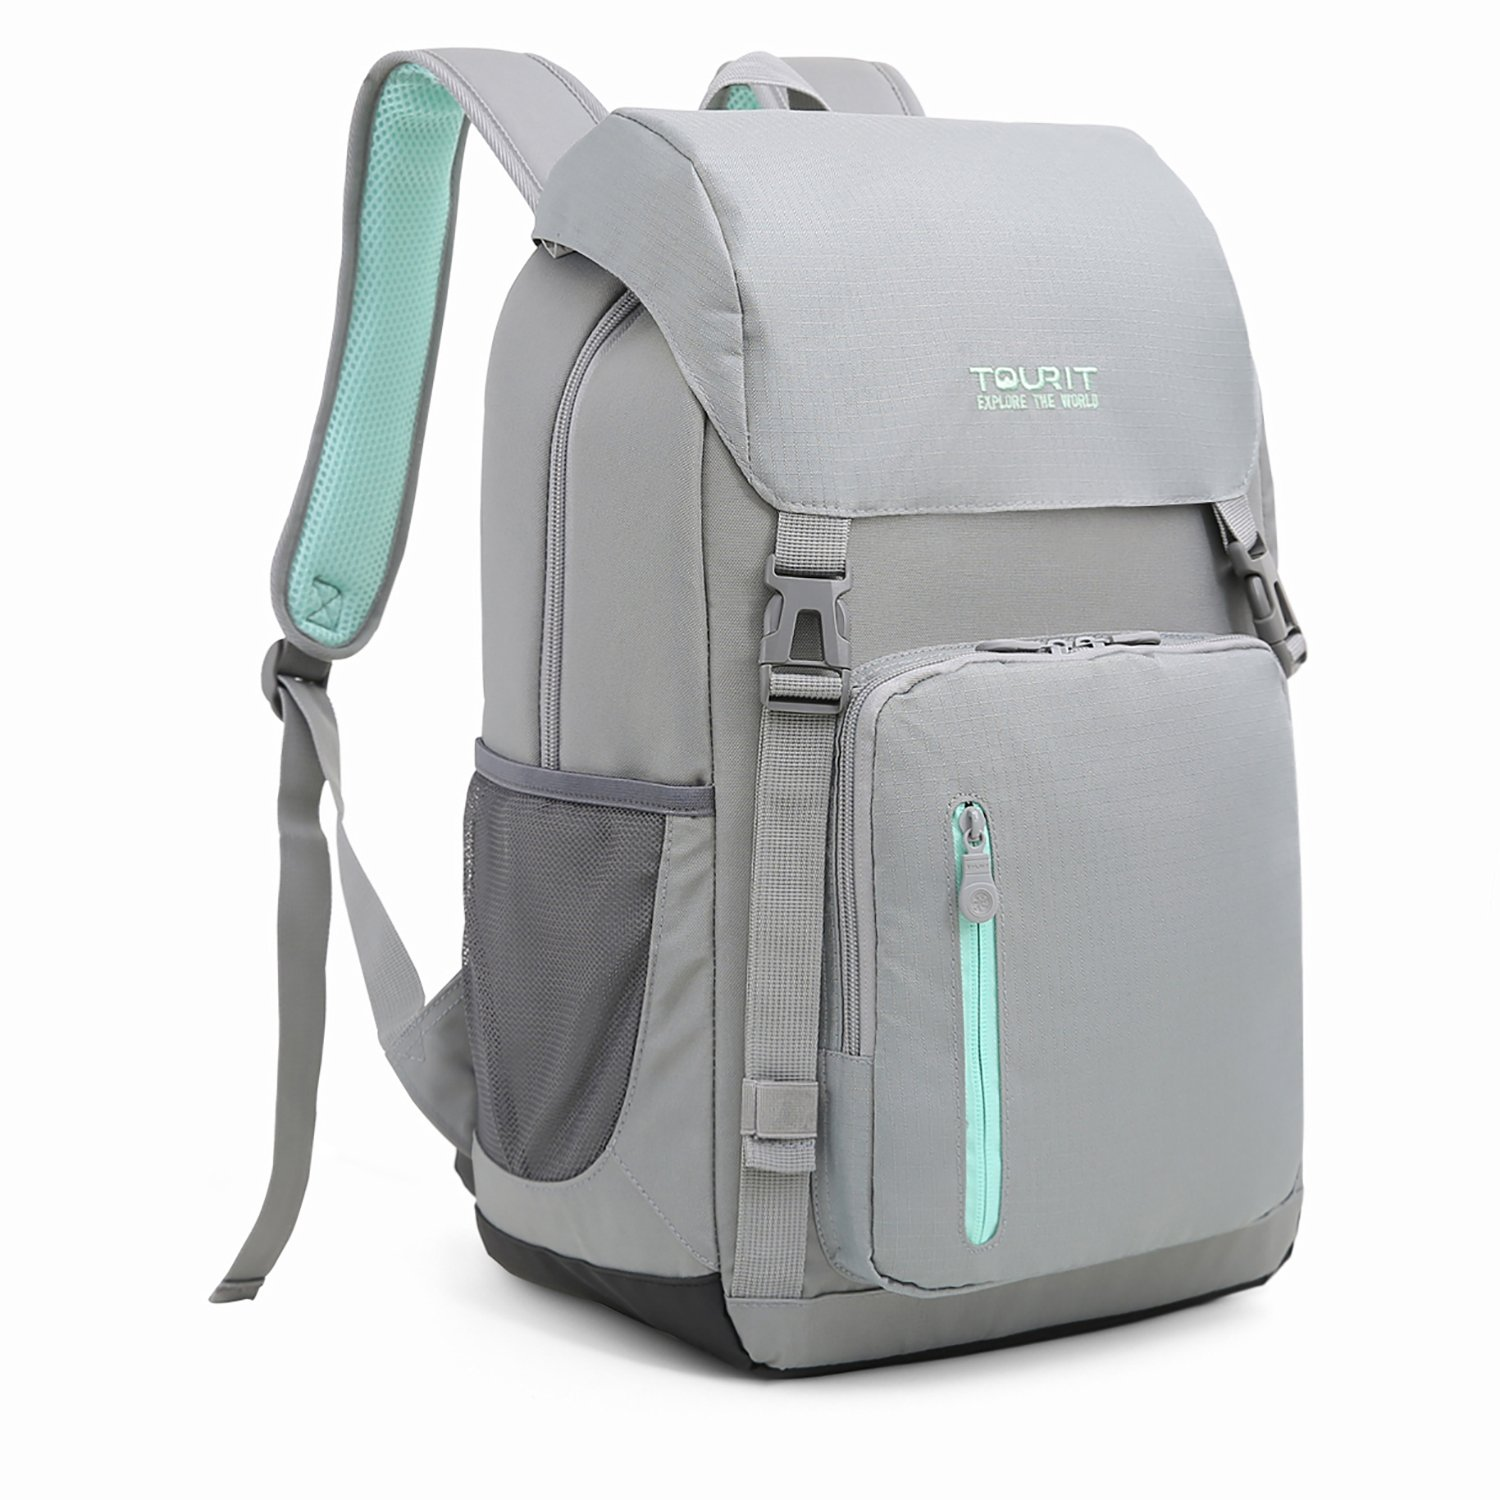 TOURIT Insulated Cooler Backpack Bag Picnic Back Packs Cooler Stylish Lightweight Backpack with Cooler Large Capacity for Men Women to Hiking, Travel, Camping